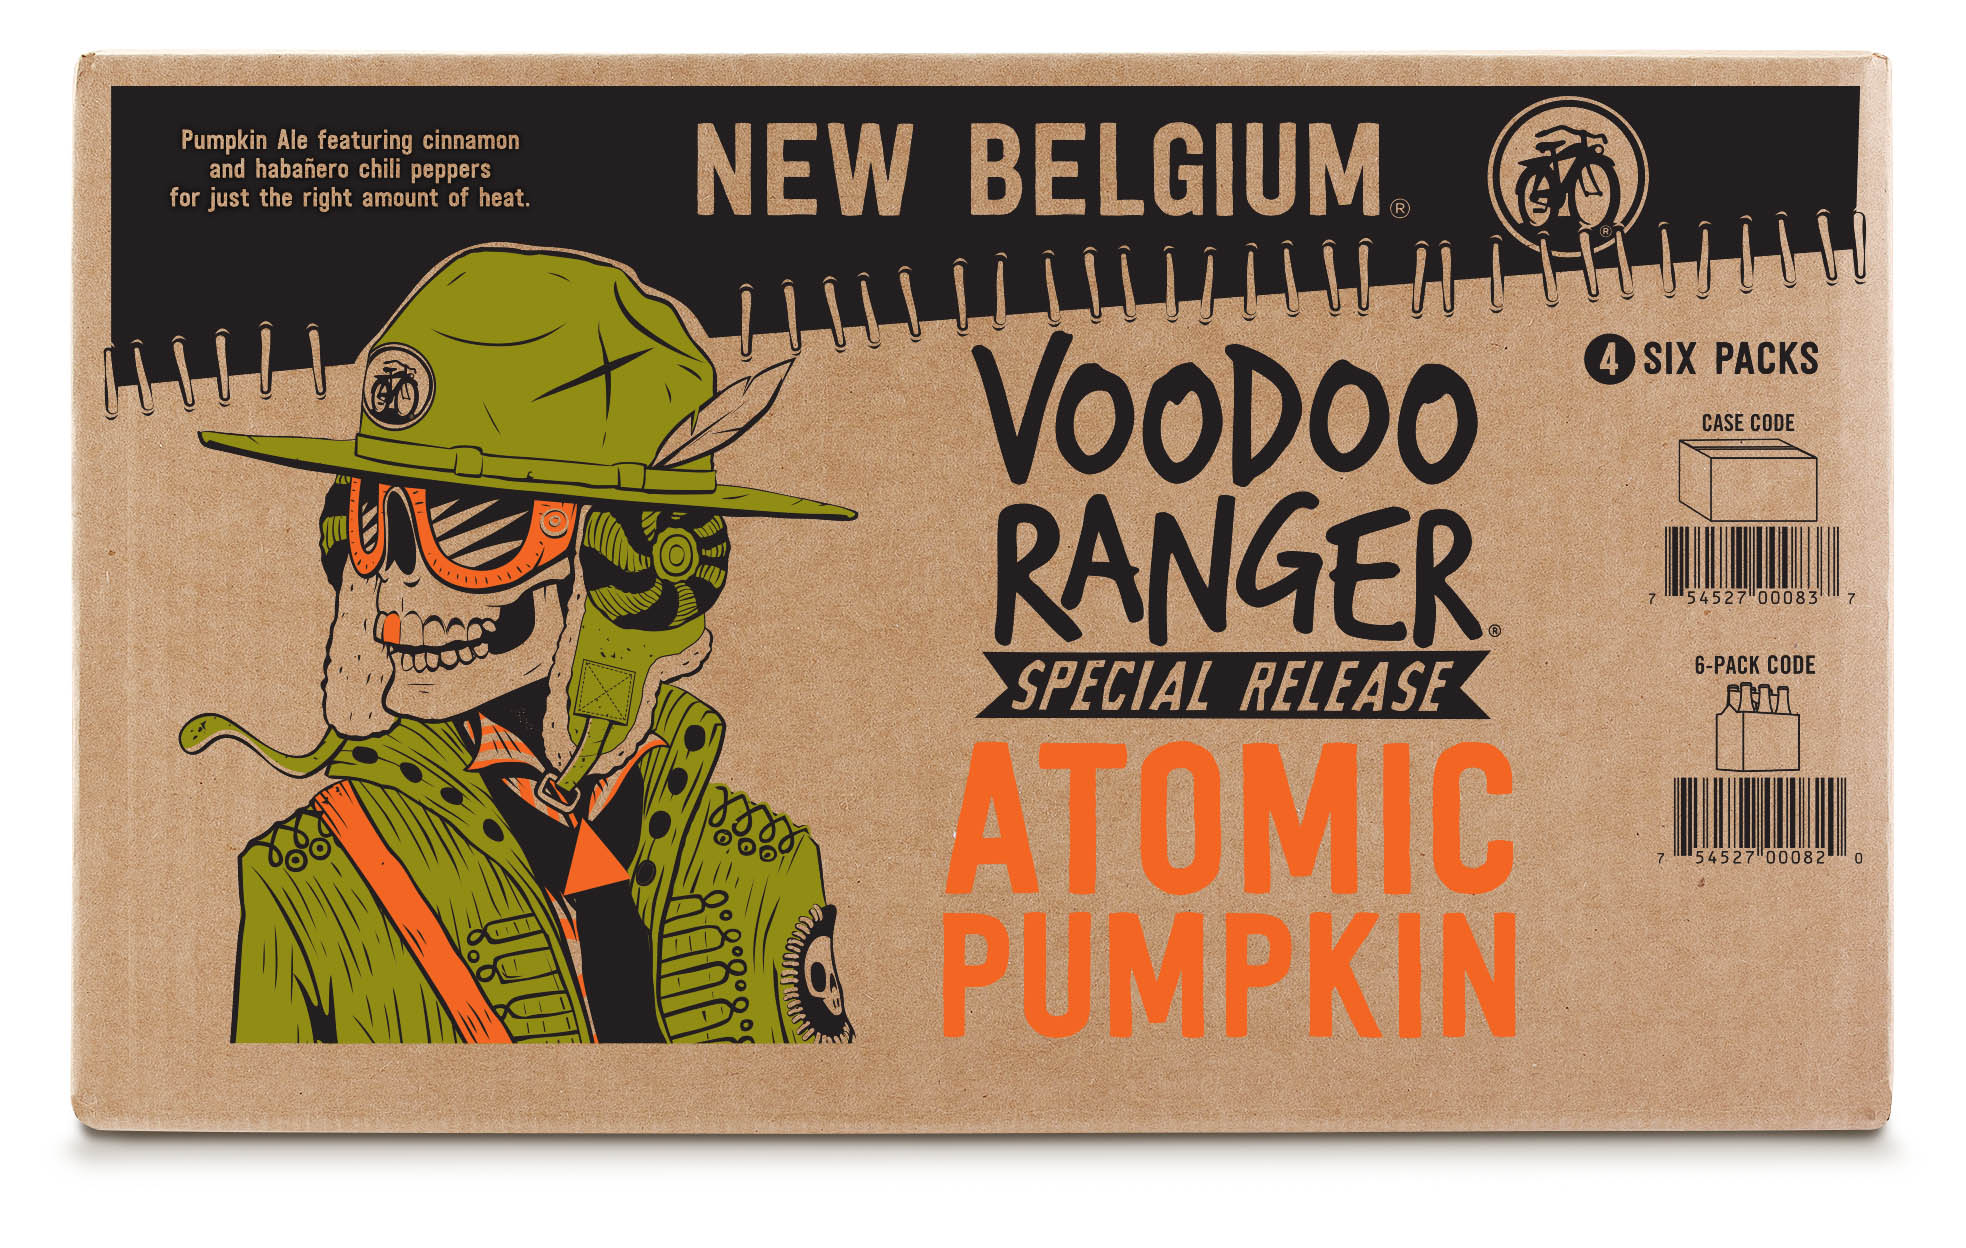 New Belgium to Release Atomic Pumpkin Ale | Brewbound.com